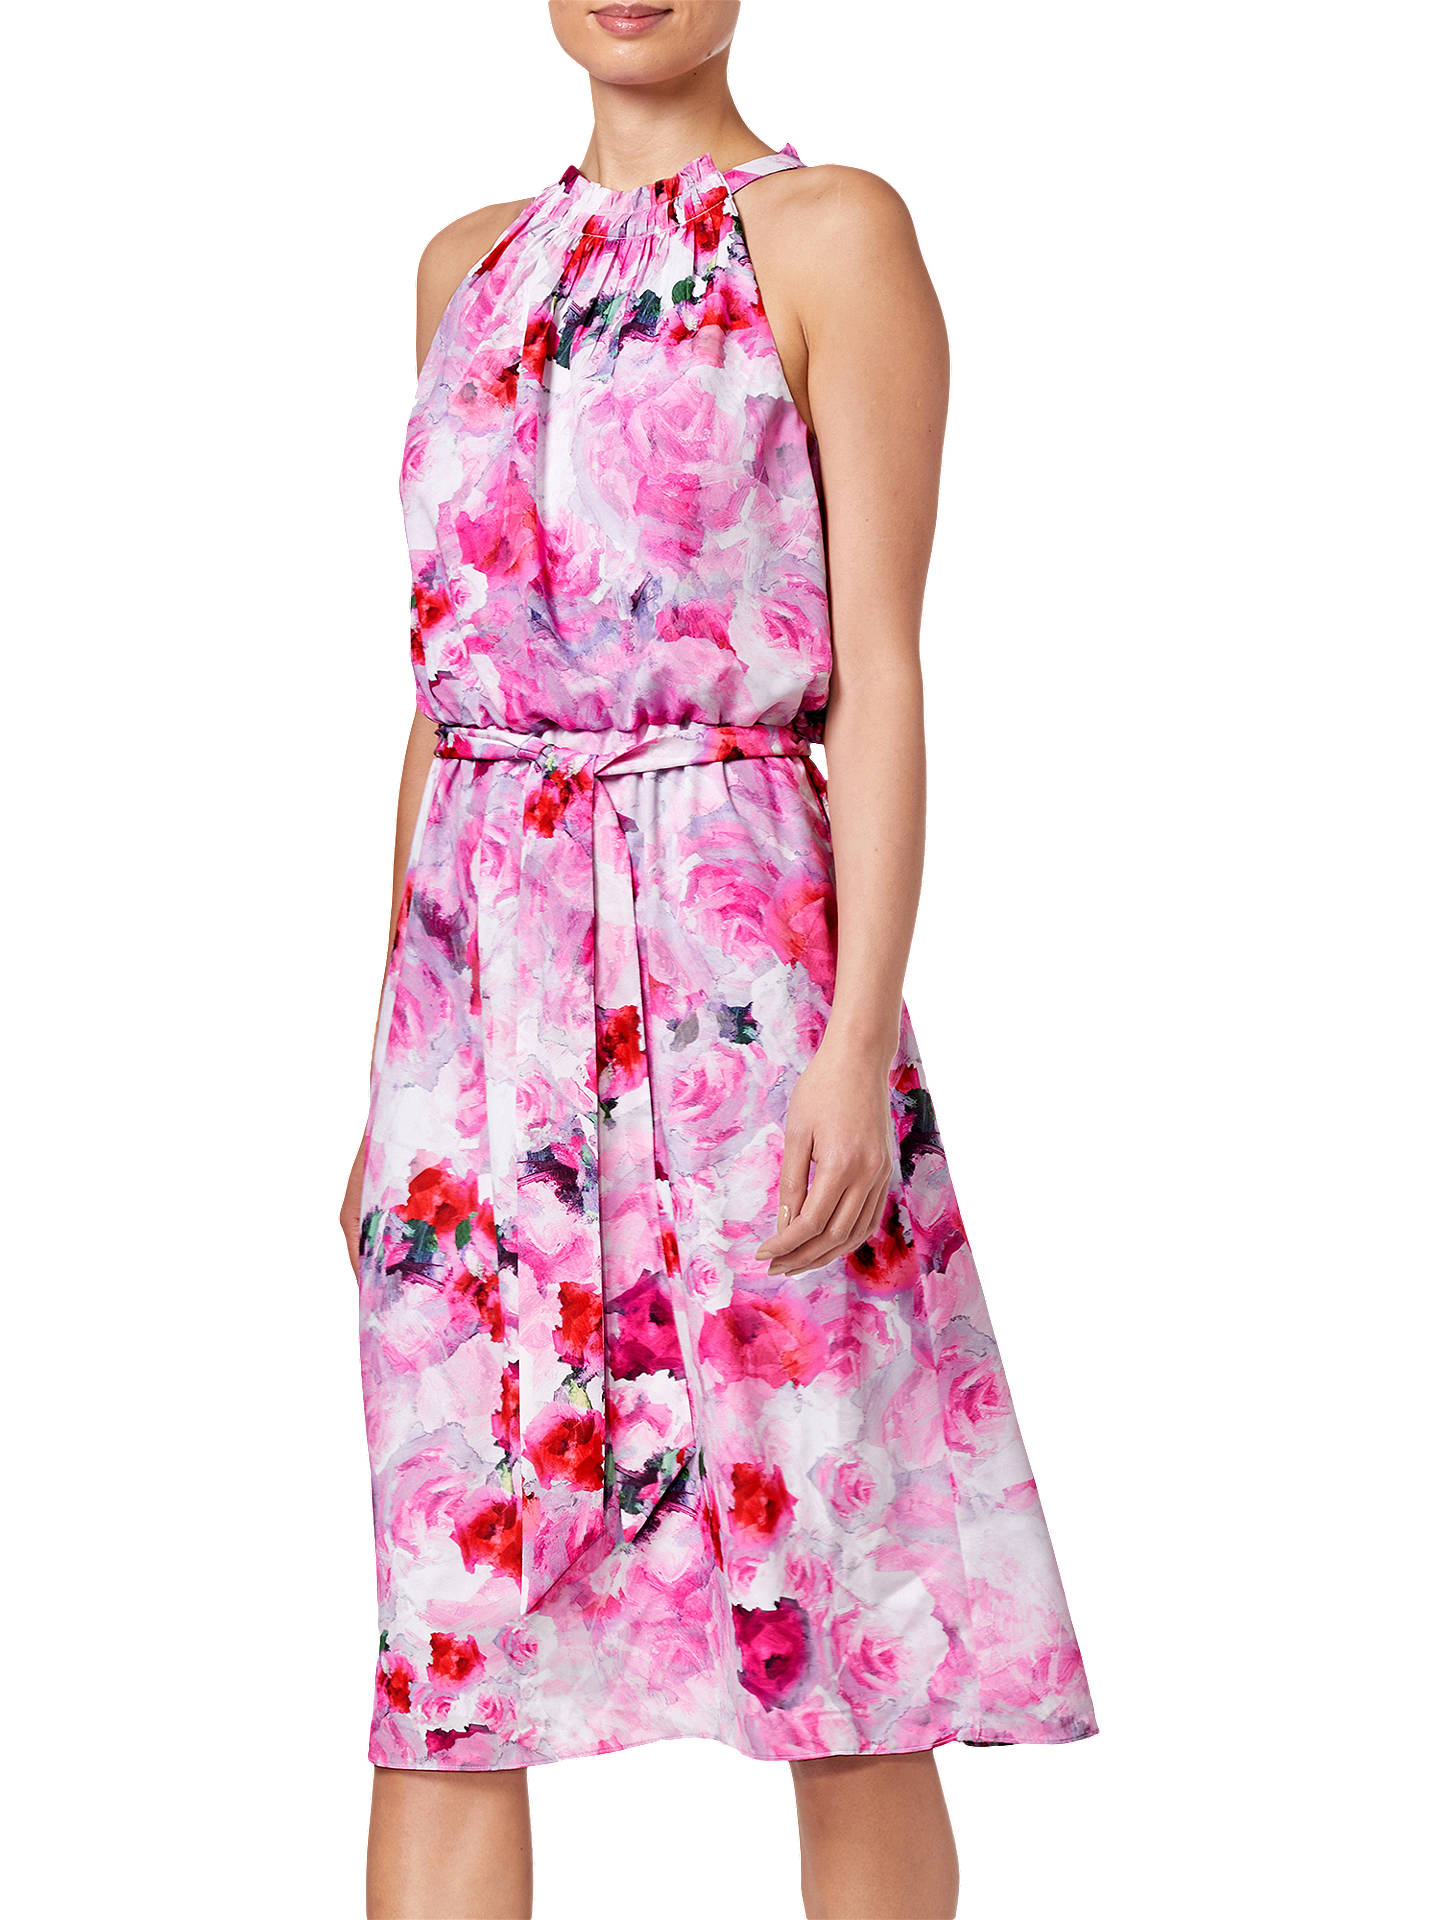 BuyAdrianna Papell Blurred Roses Halter Dress, Pink Multi, 8 Online at johnlewis.com